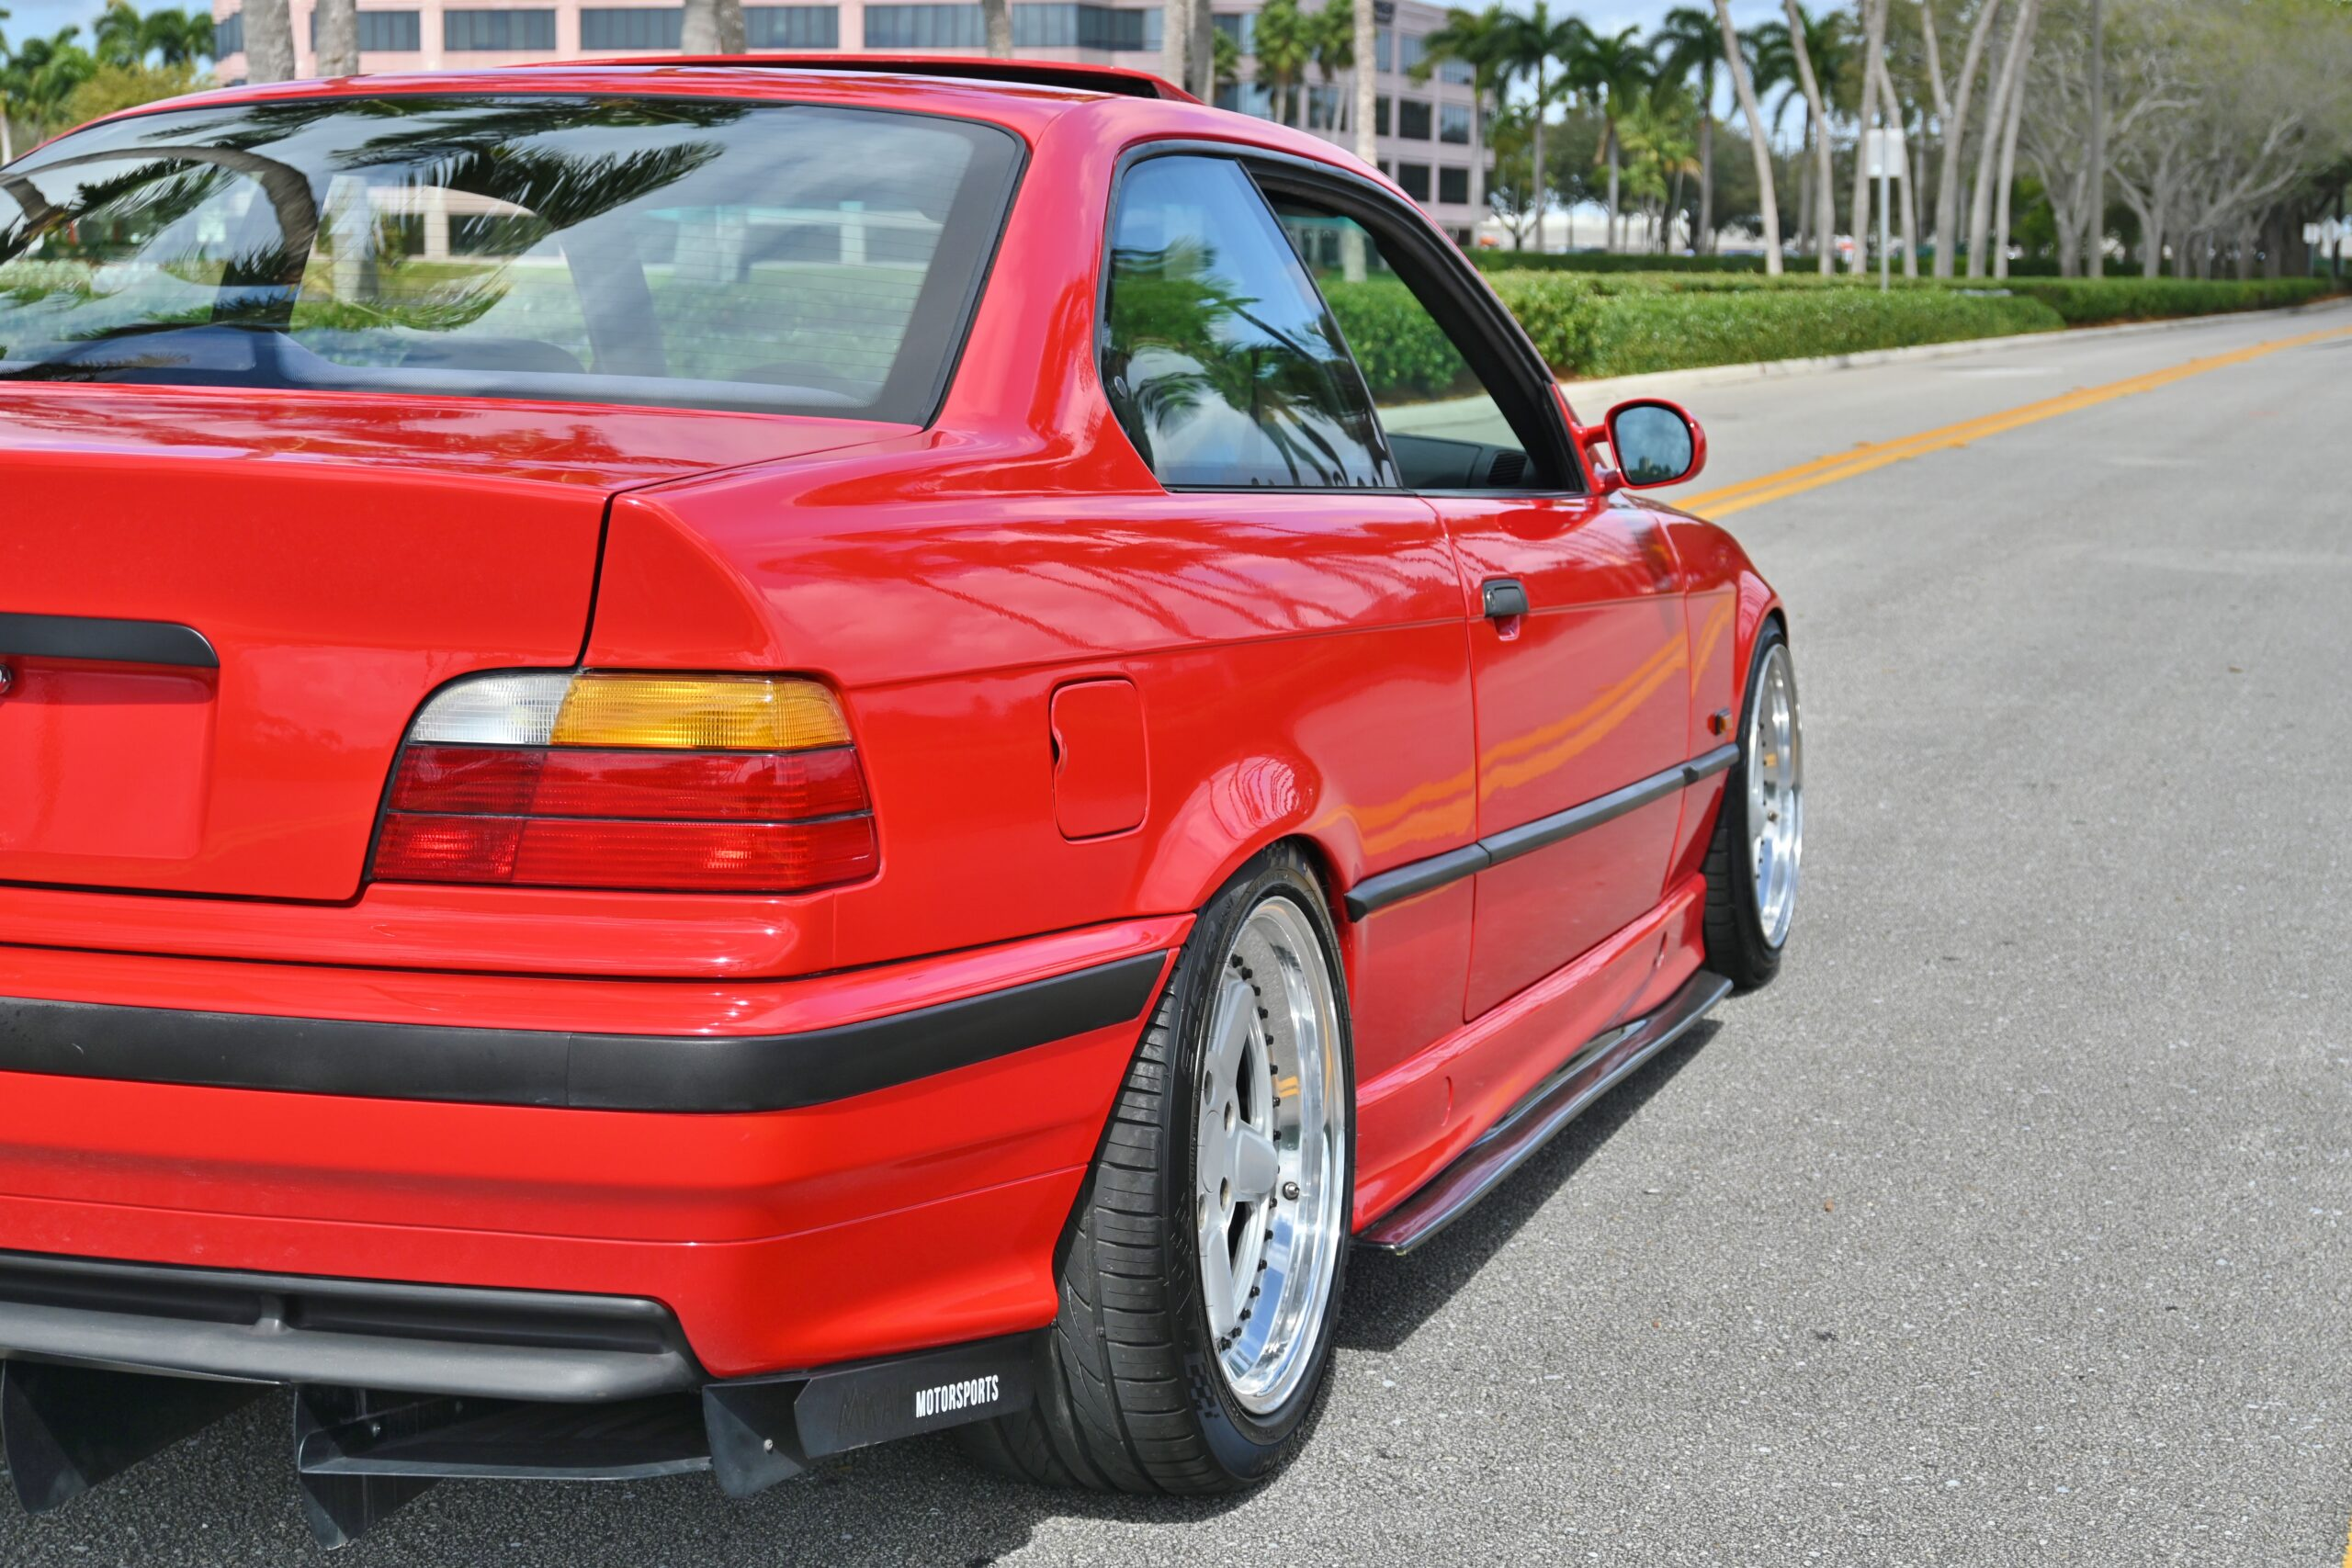 1994 BMW LS1 E36 Fully Sorted Build – T56 Manual – ACS Wheels – Airlift Suspension – Vader Seats